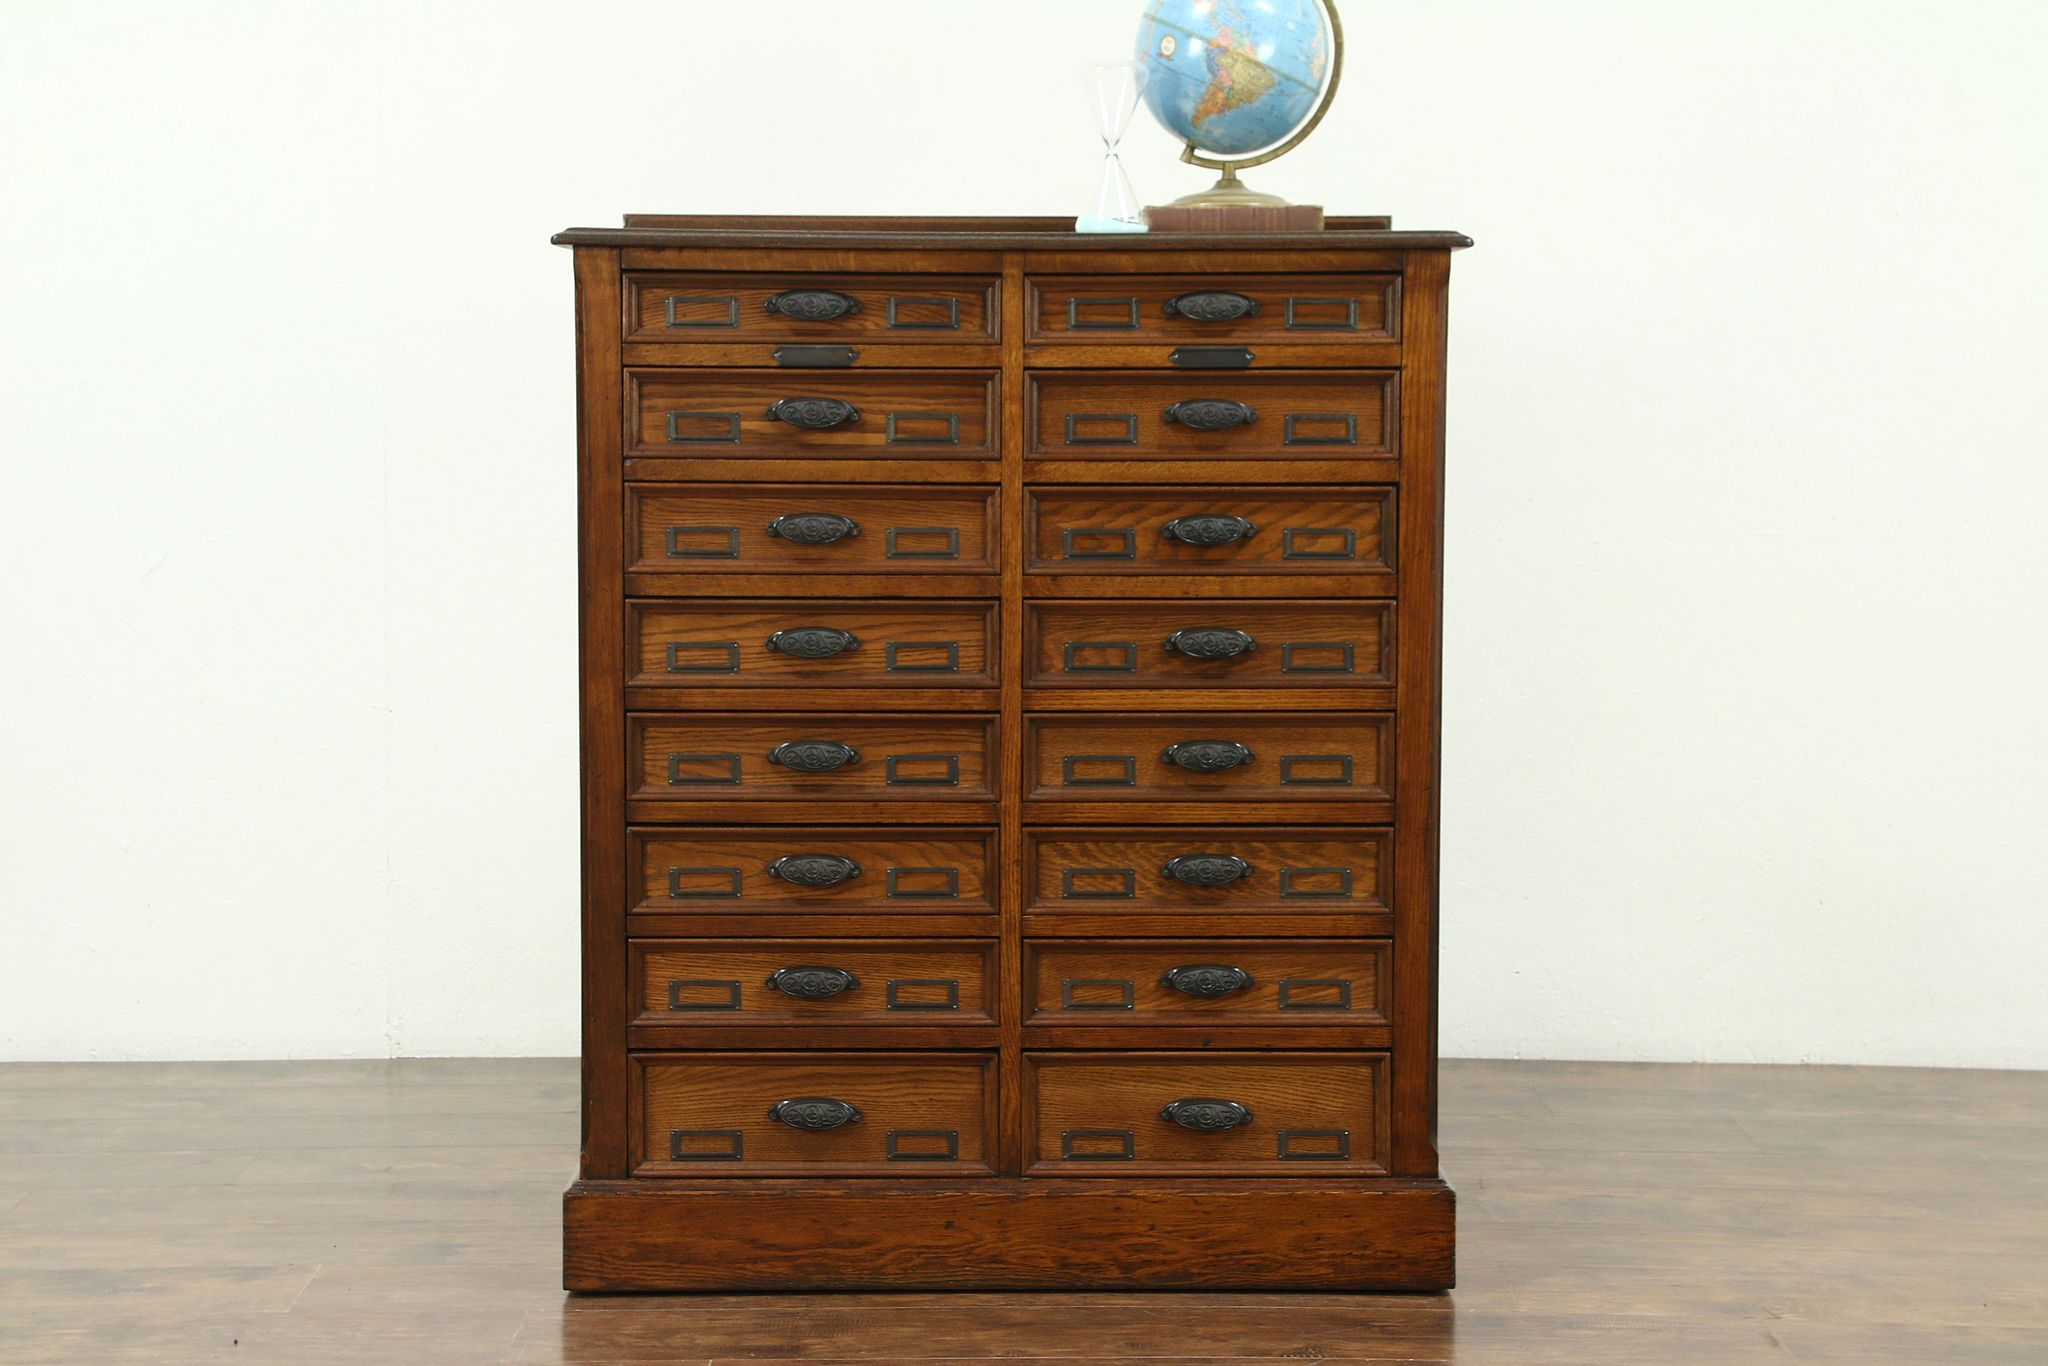 cabinets for filing drawer file mini legal metal decorative storage cabinet furniture wooden oak home ikea drawers